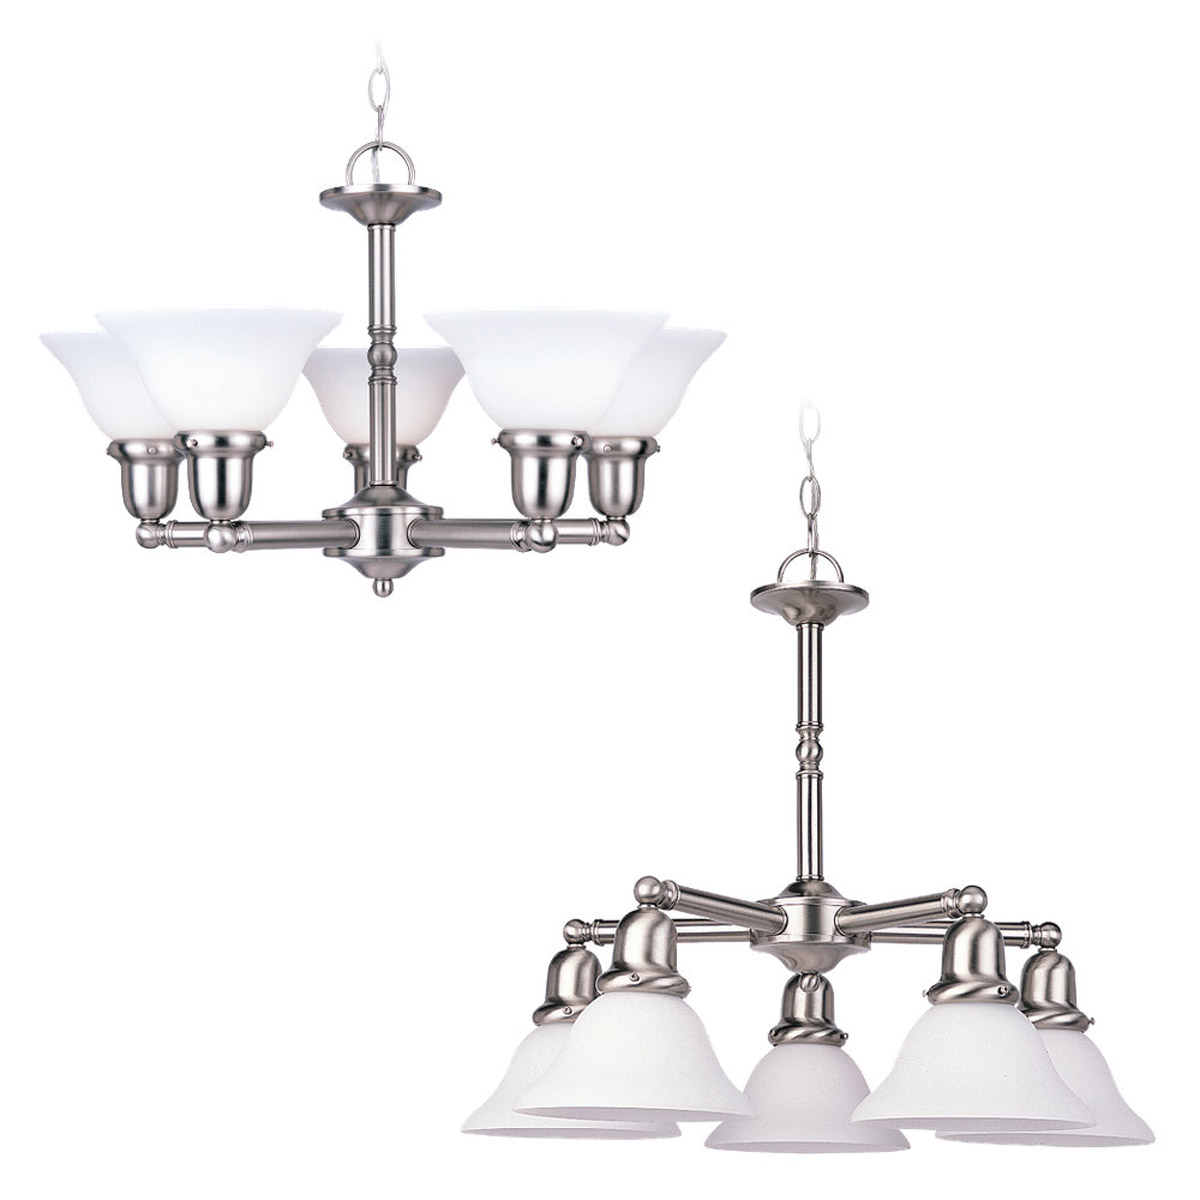 Sea Gull Lighting Sussex 5 Light Chandelier in Brushed Nickel 39062BLE-962 photo